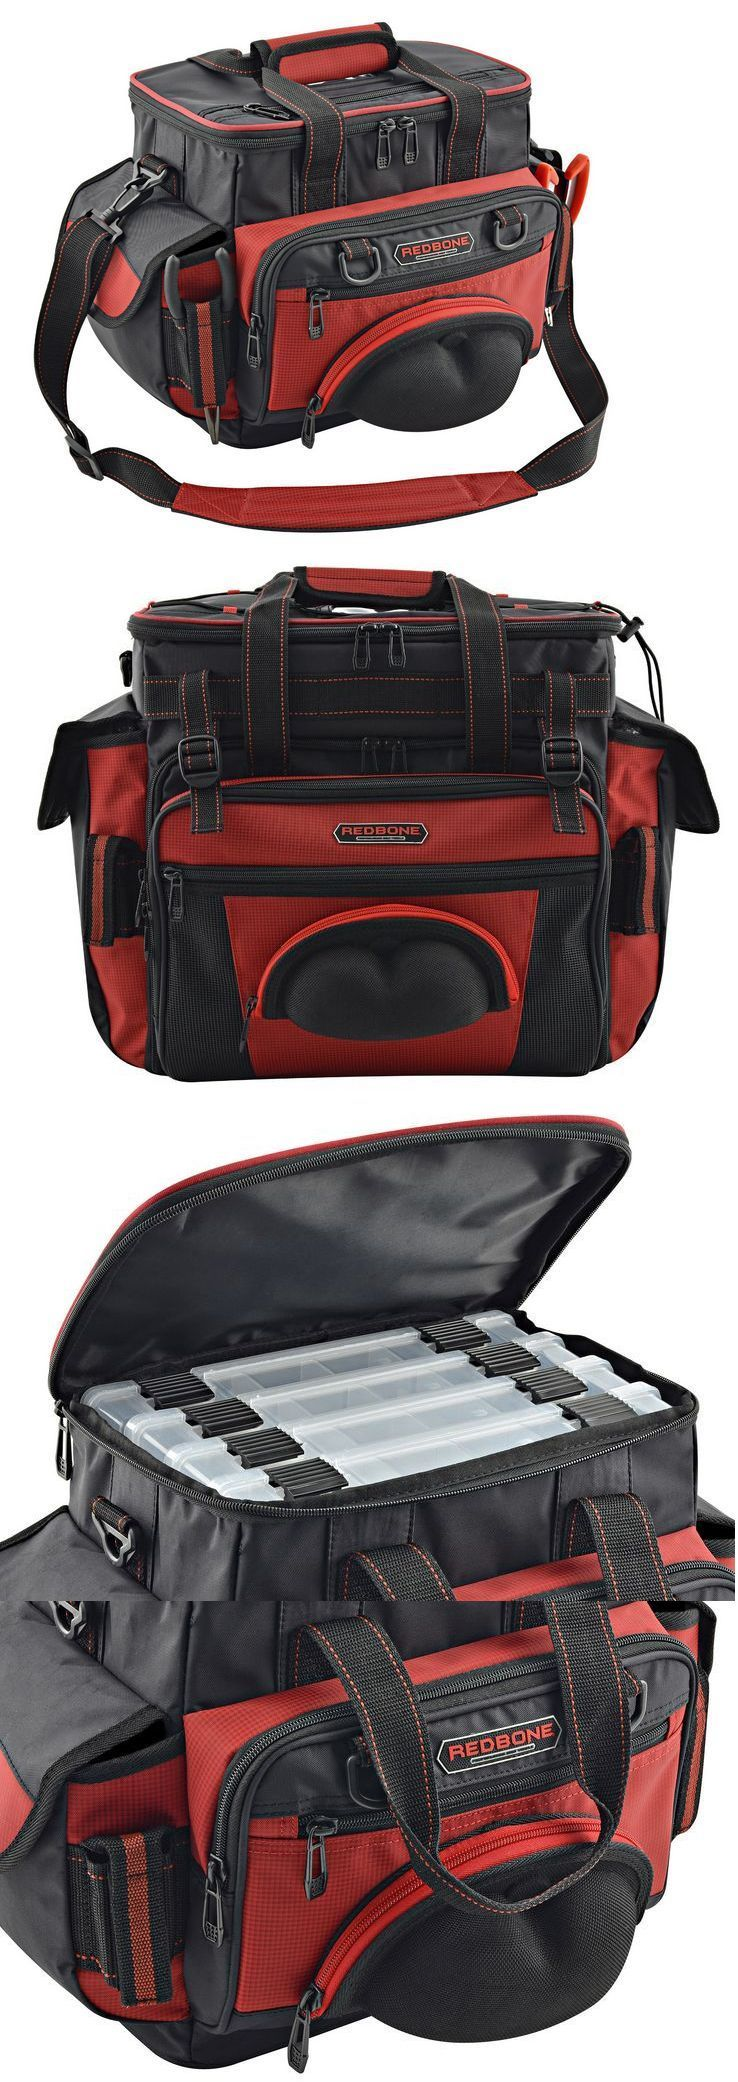 HQ Fishing Bag Hard Case Tackle Carry Storage Box Rod Reel Gear Soft Hunting